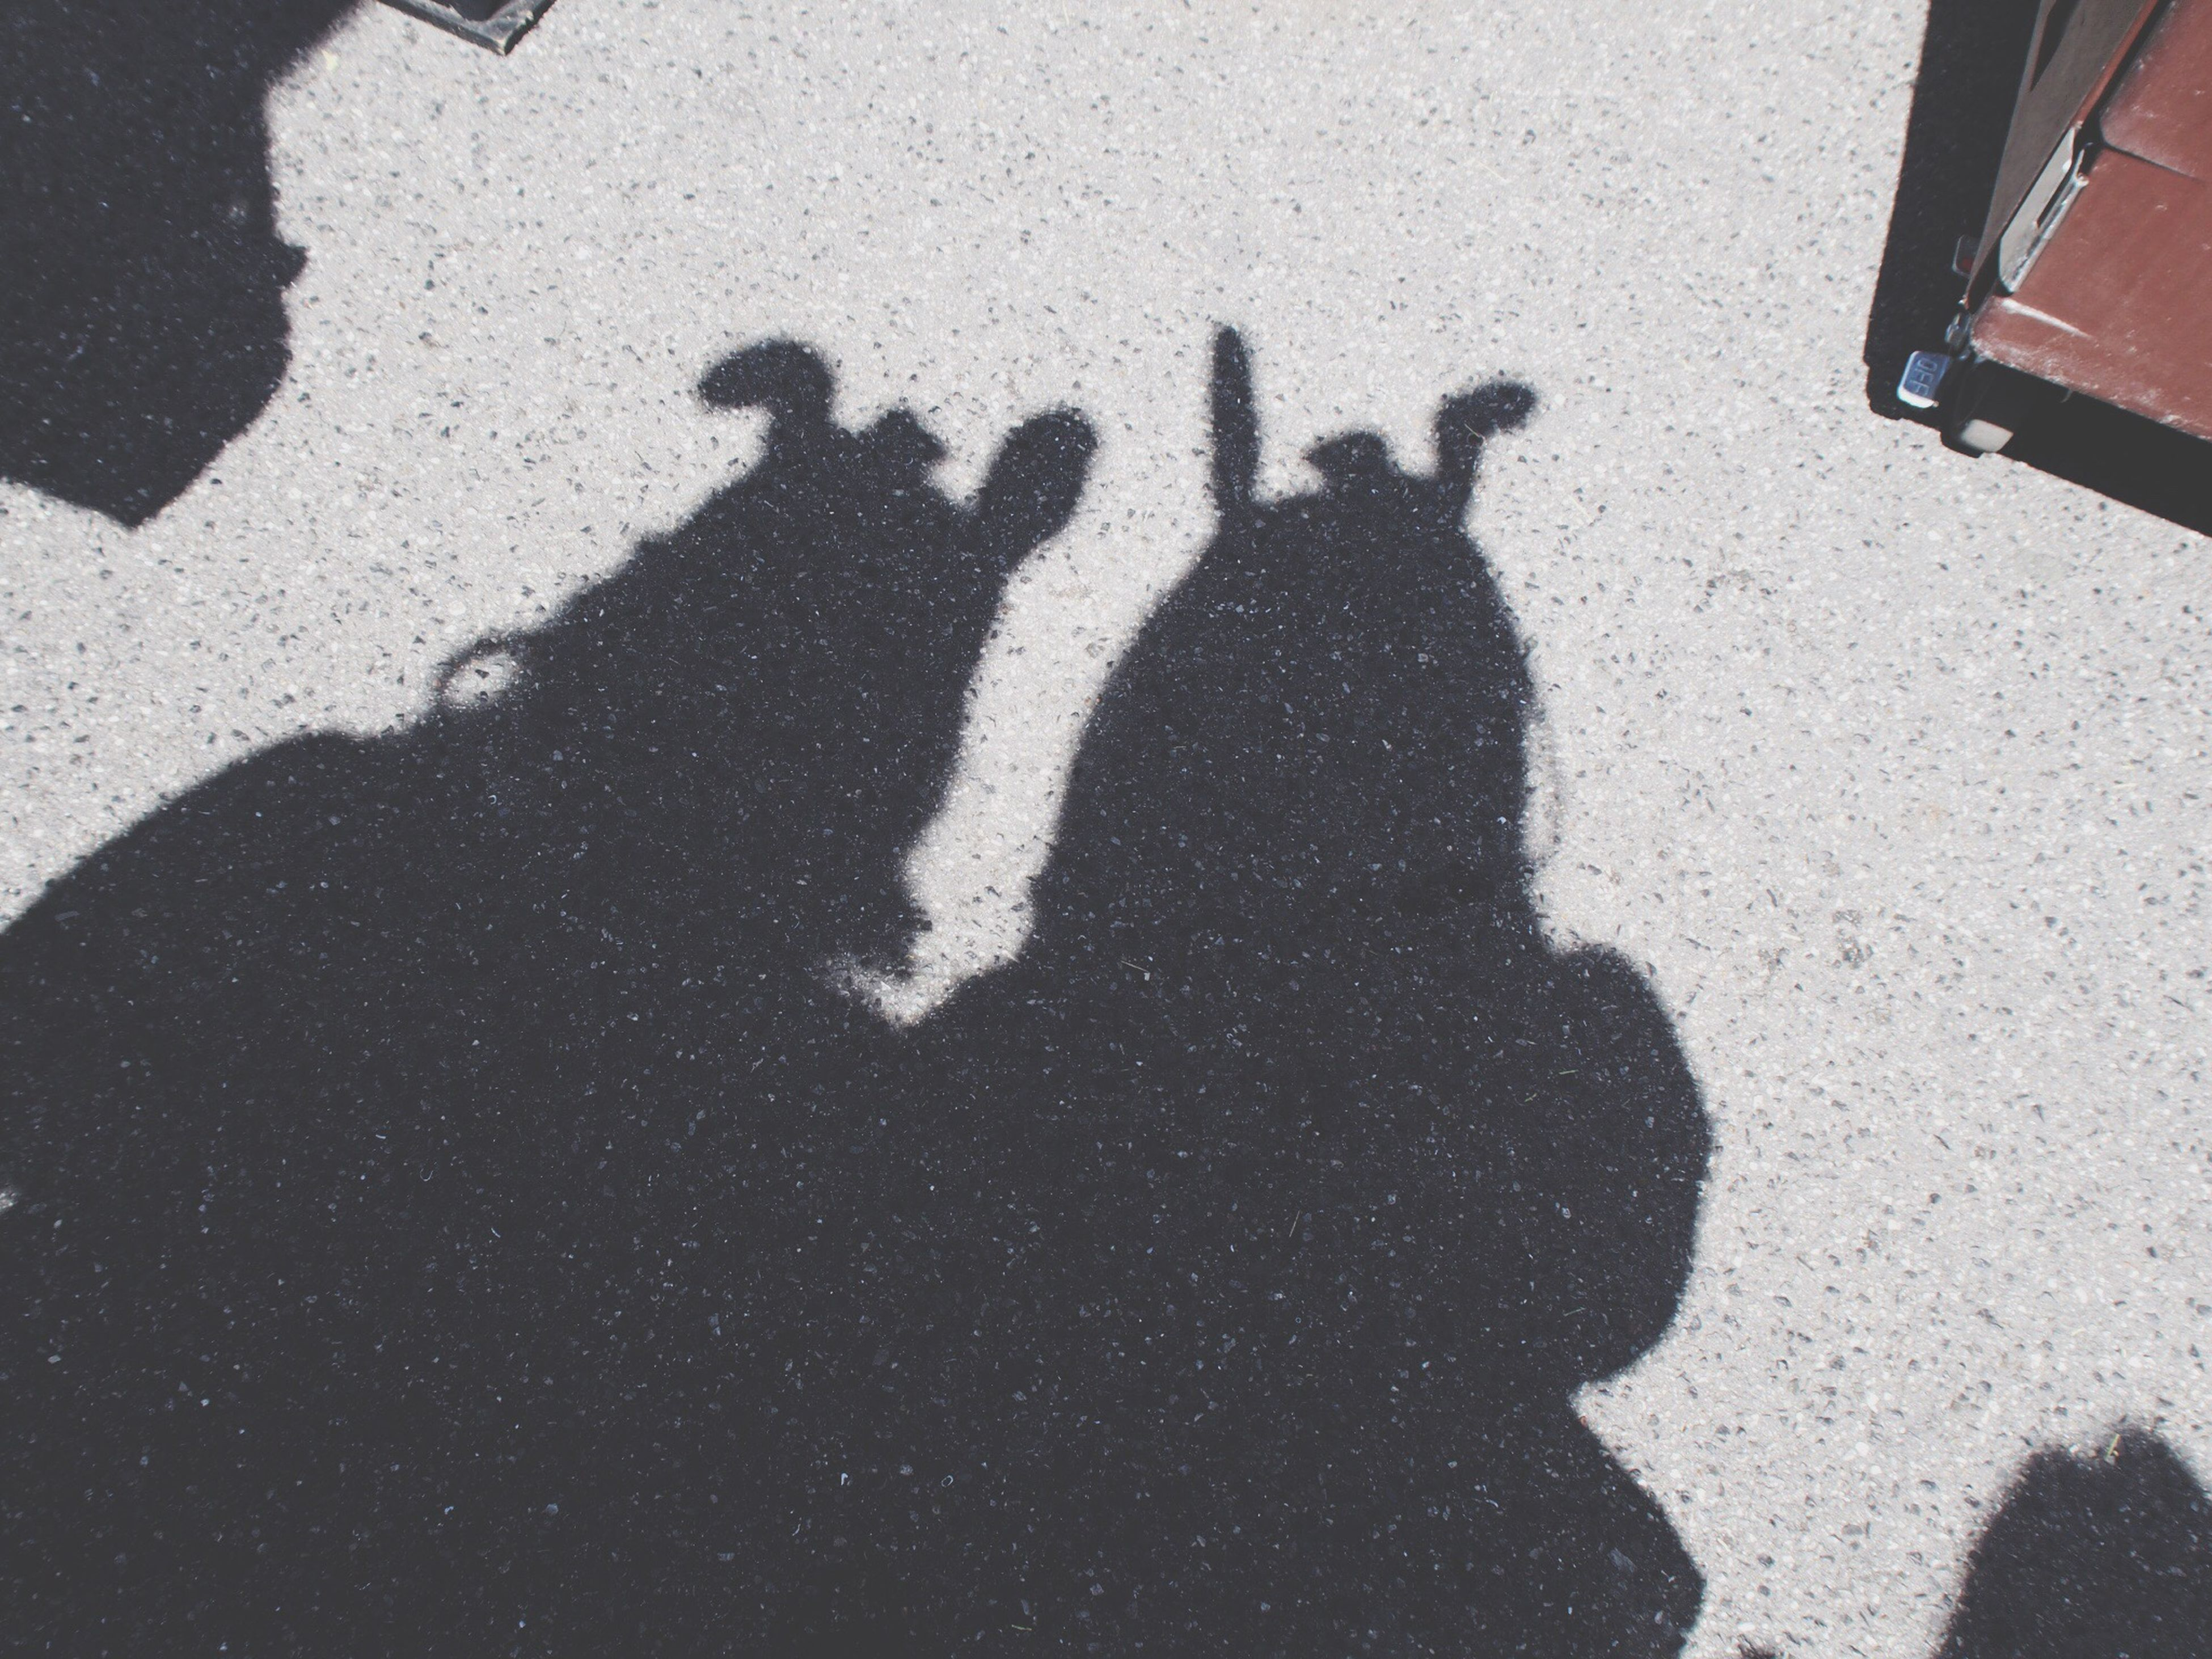 shadow, high angle view, togetherness, lifestyles, men, leisure activity, street, focus on shadow, bonding, sunlight, love, unrecognizable person, outdoors, person, friendship, road, day, silhouette